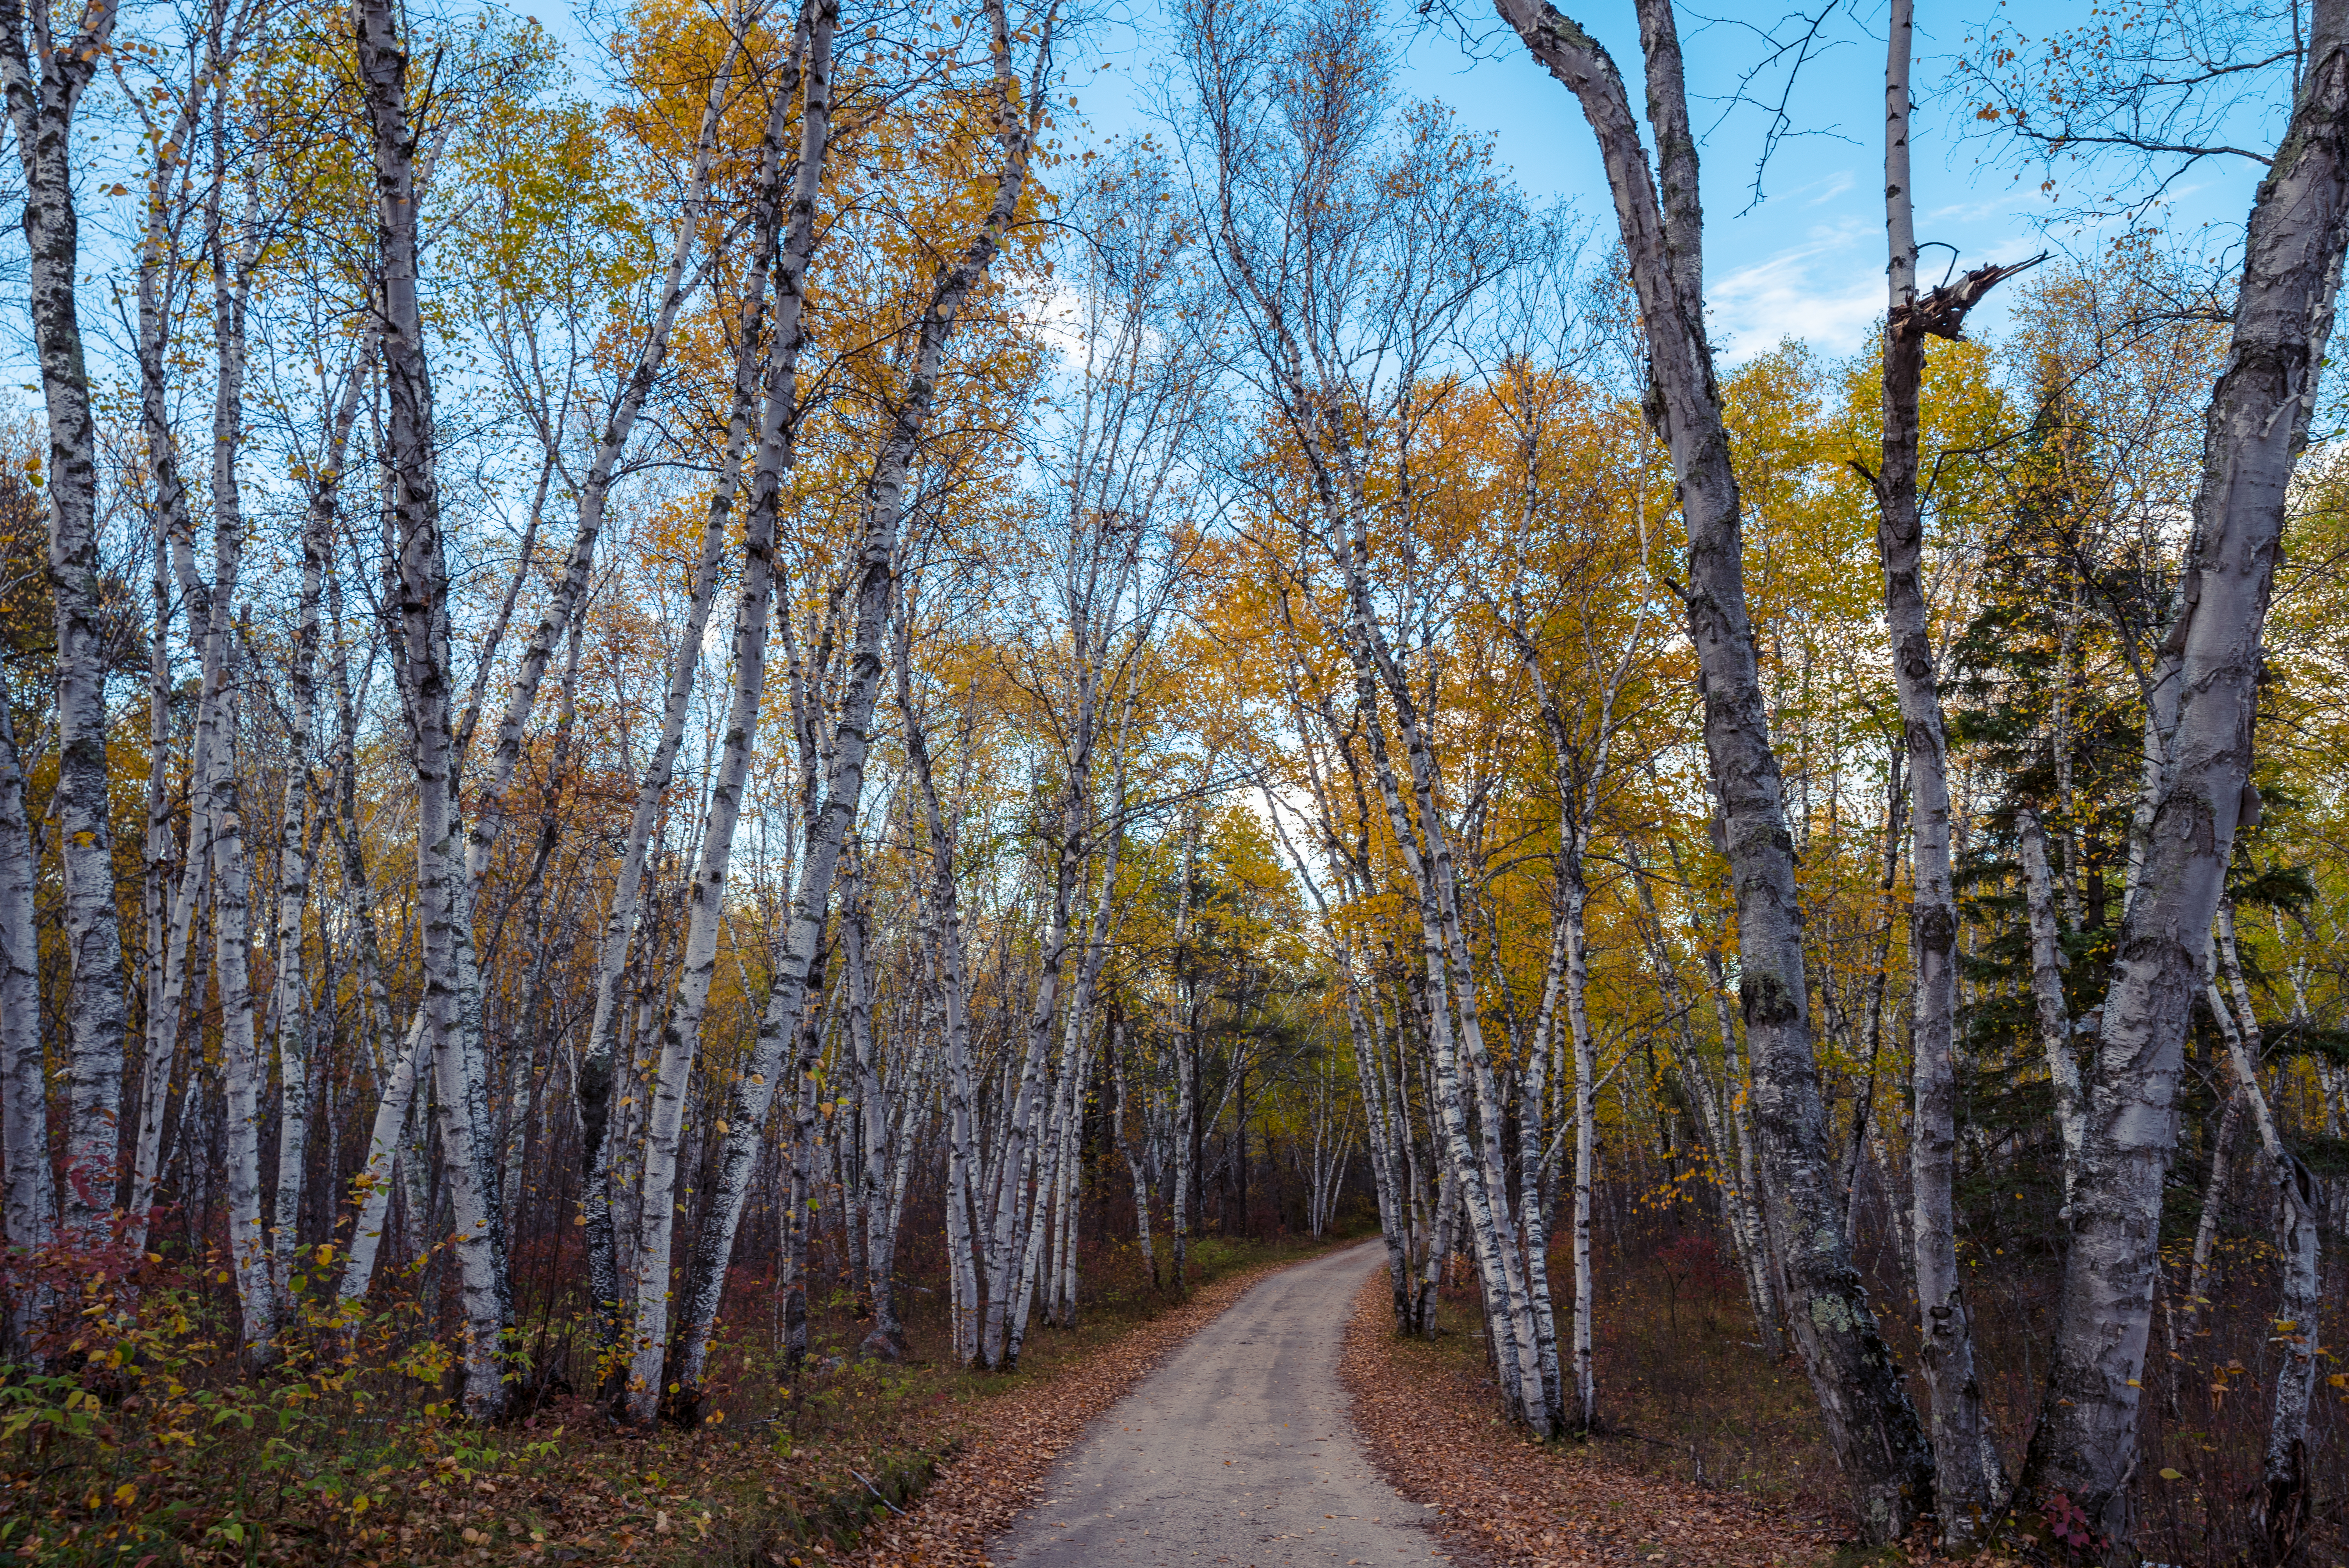 File:Road to Lake of the Woods - Zippel Bay State Park